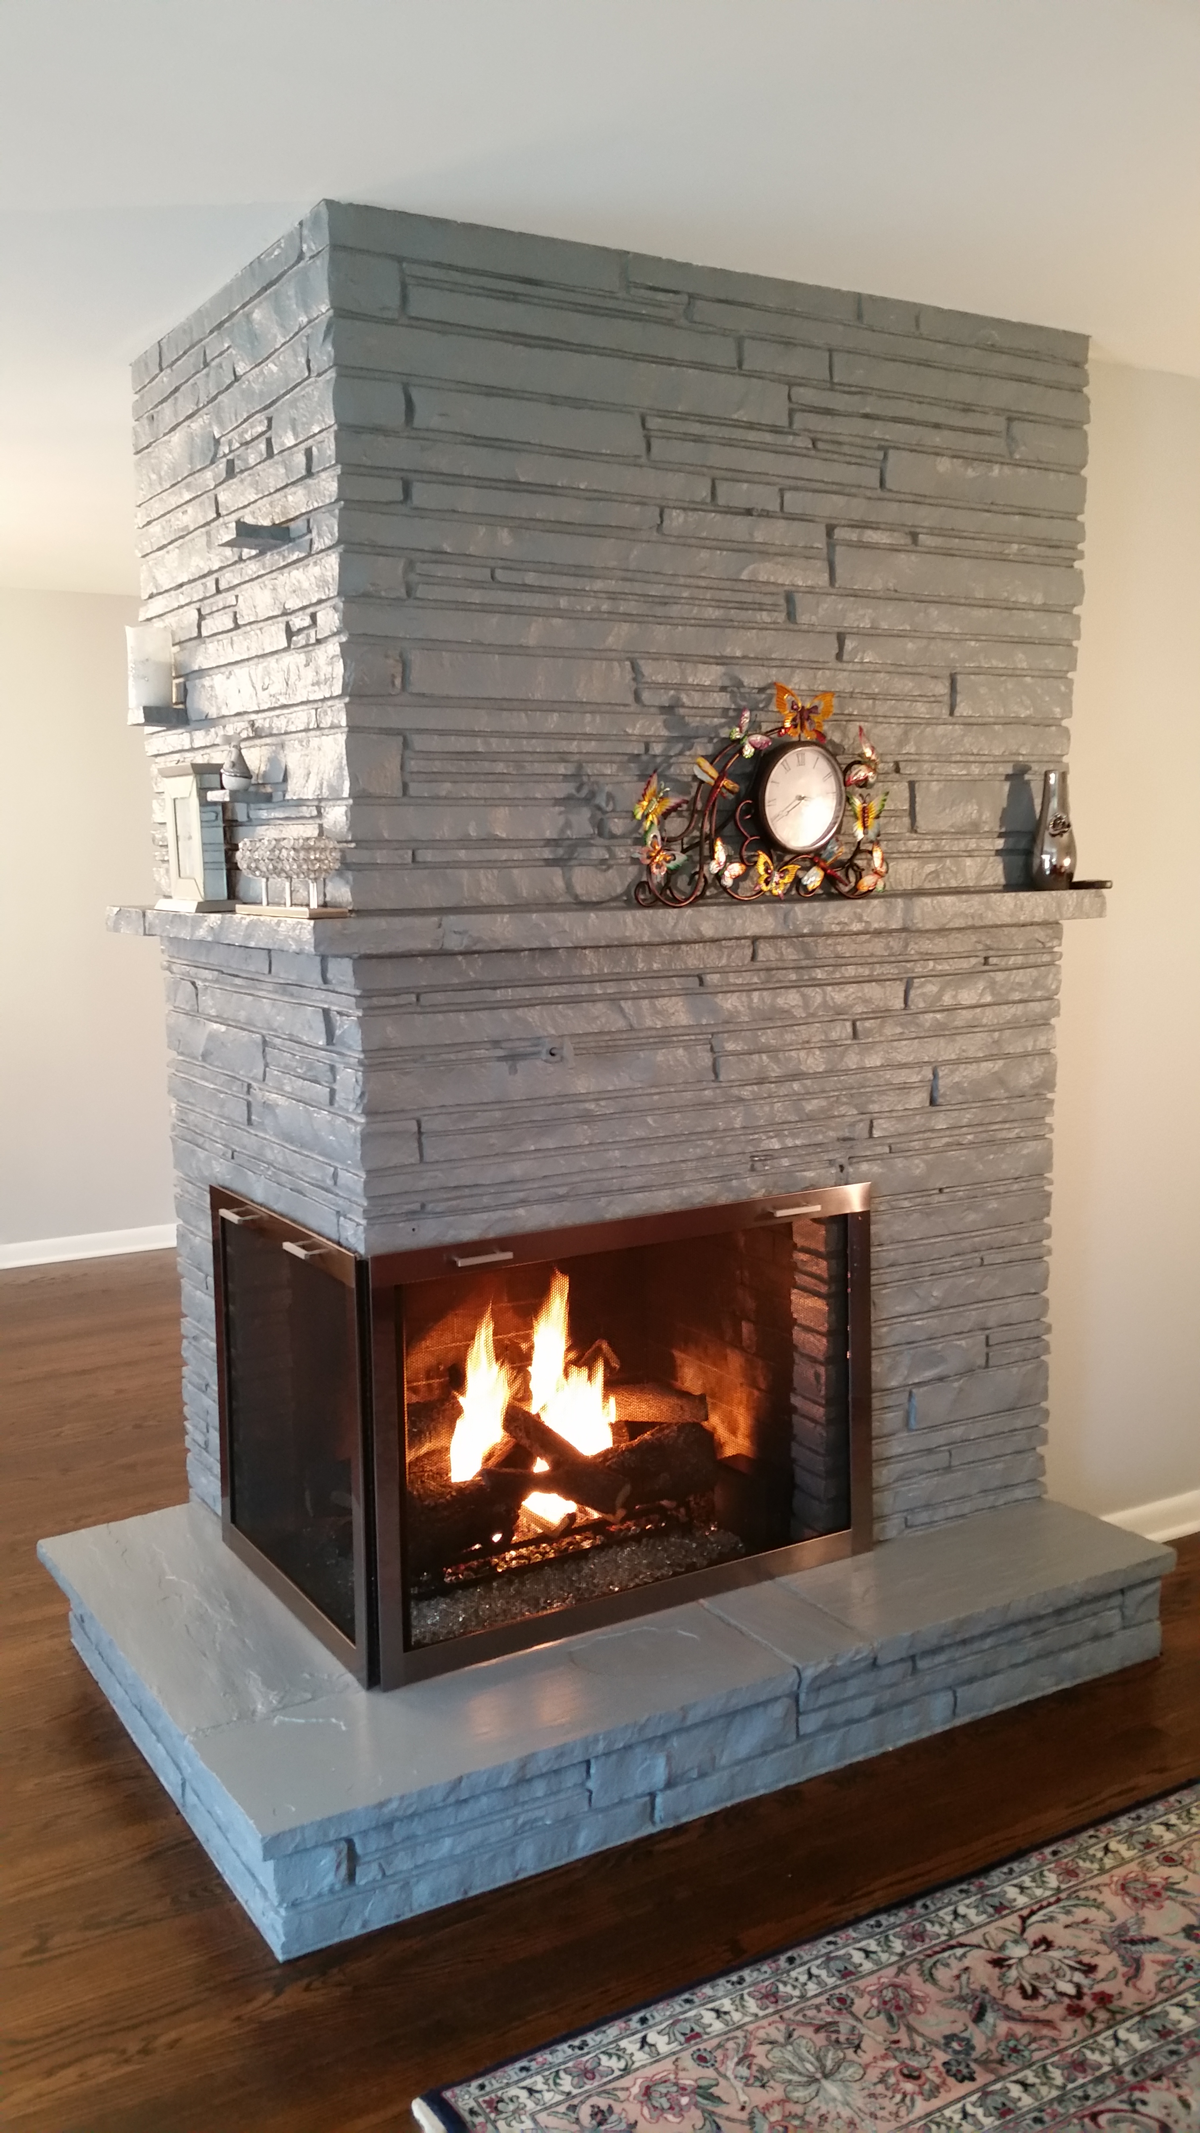 TRIMBLE TWO-SIDED FIREPLACE